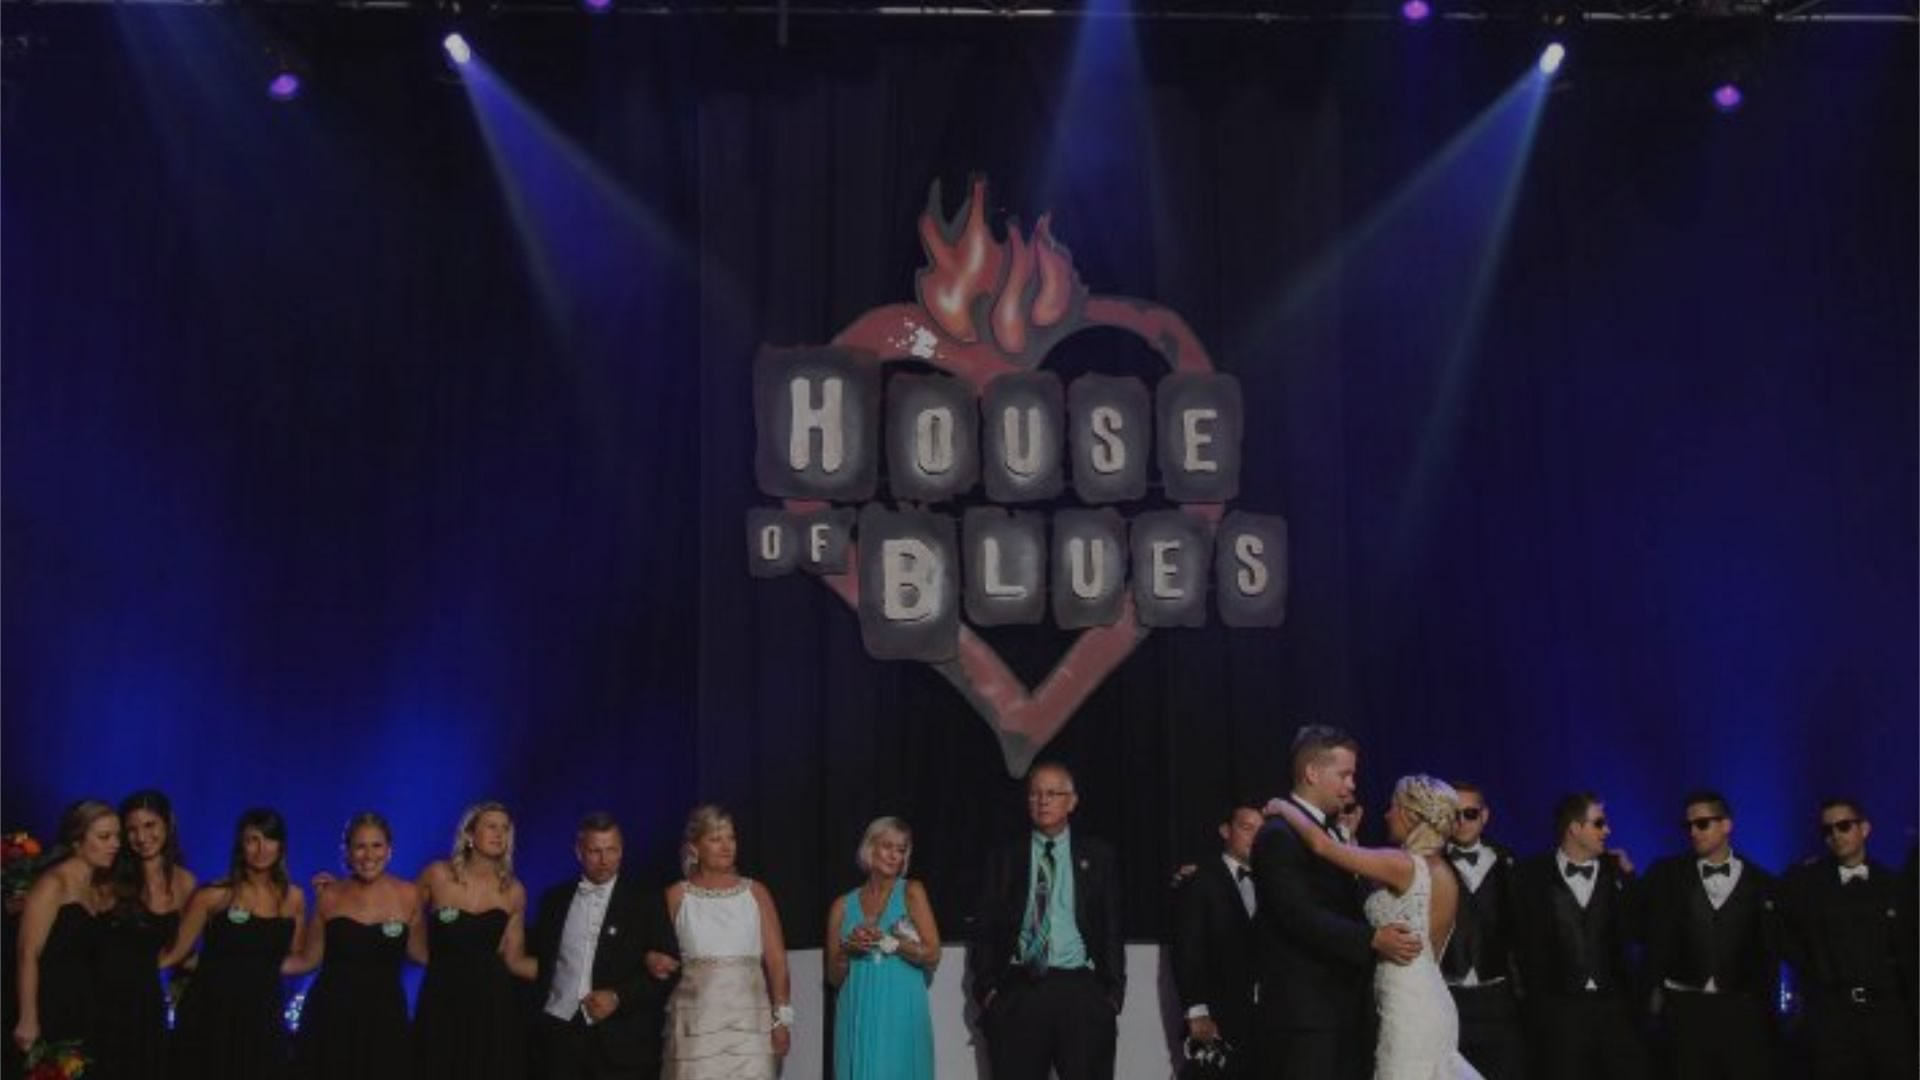 House of Blues - Sensational Ceremonies